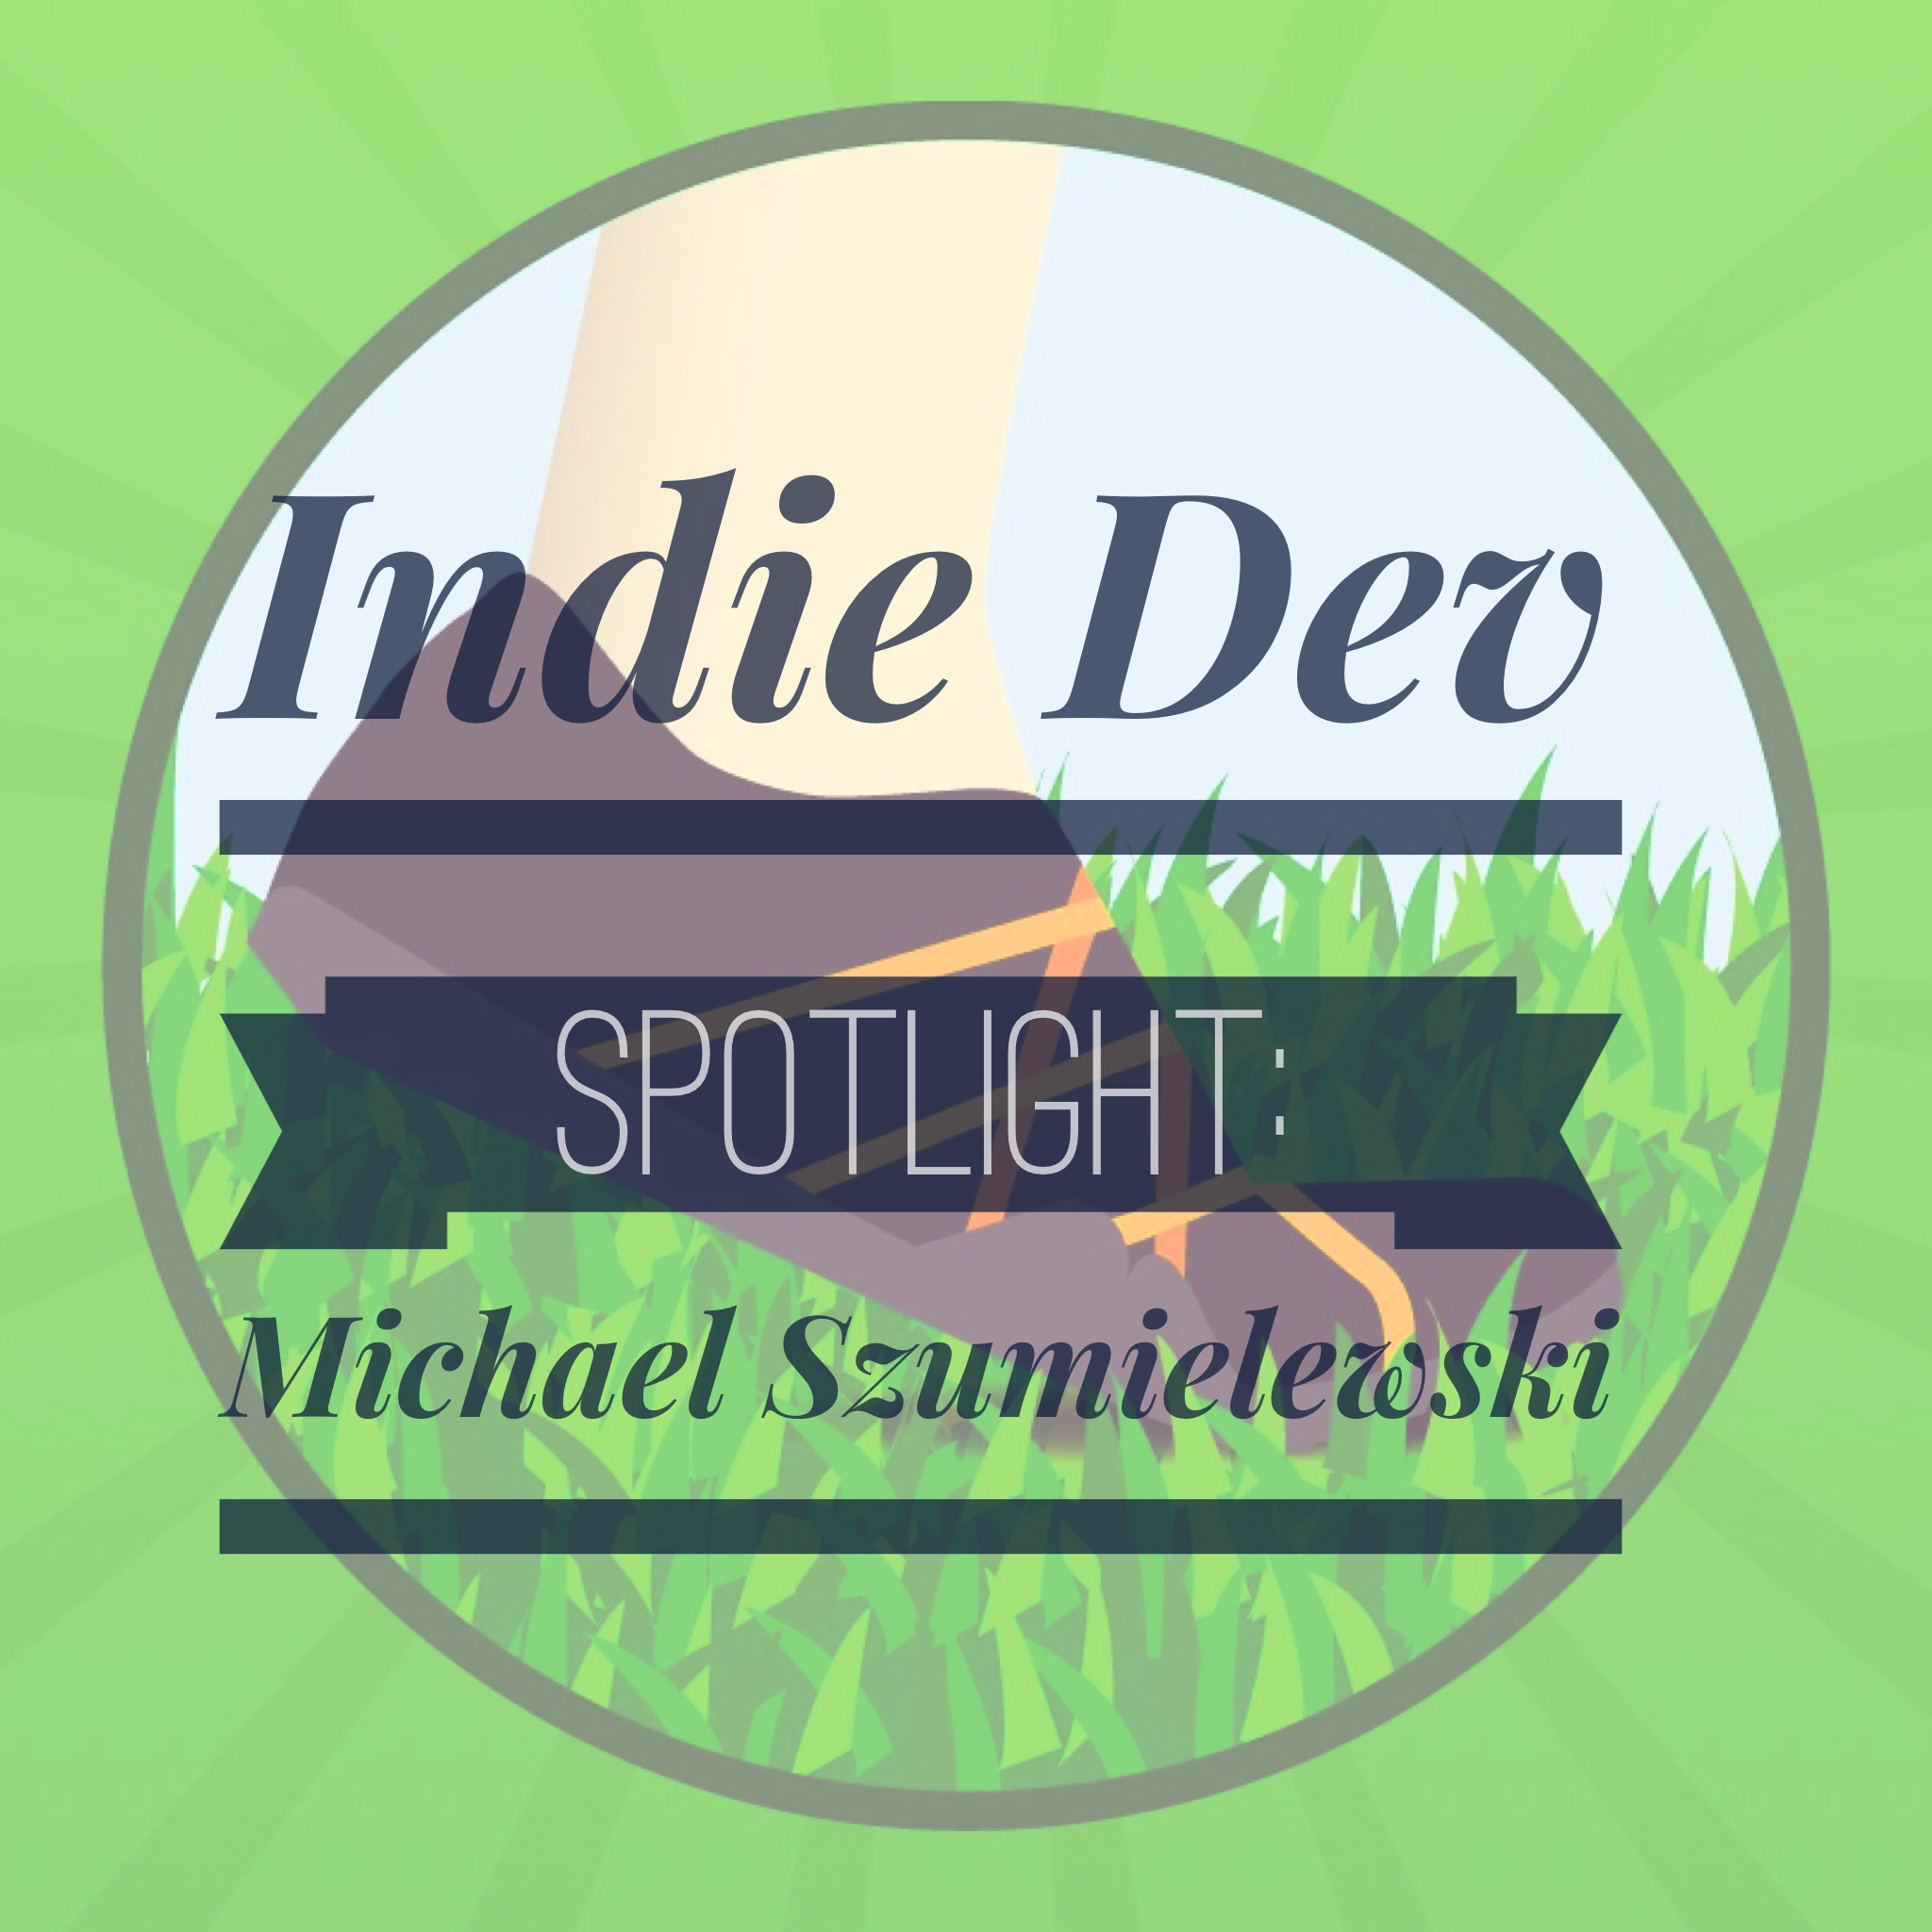 Indie Dev Spotlight: Michael Szumielewski, Stepz developer